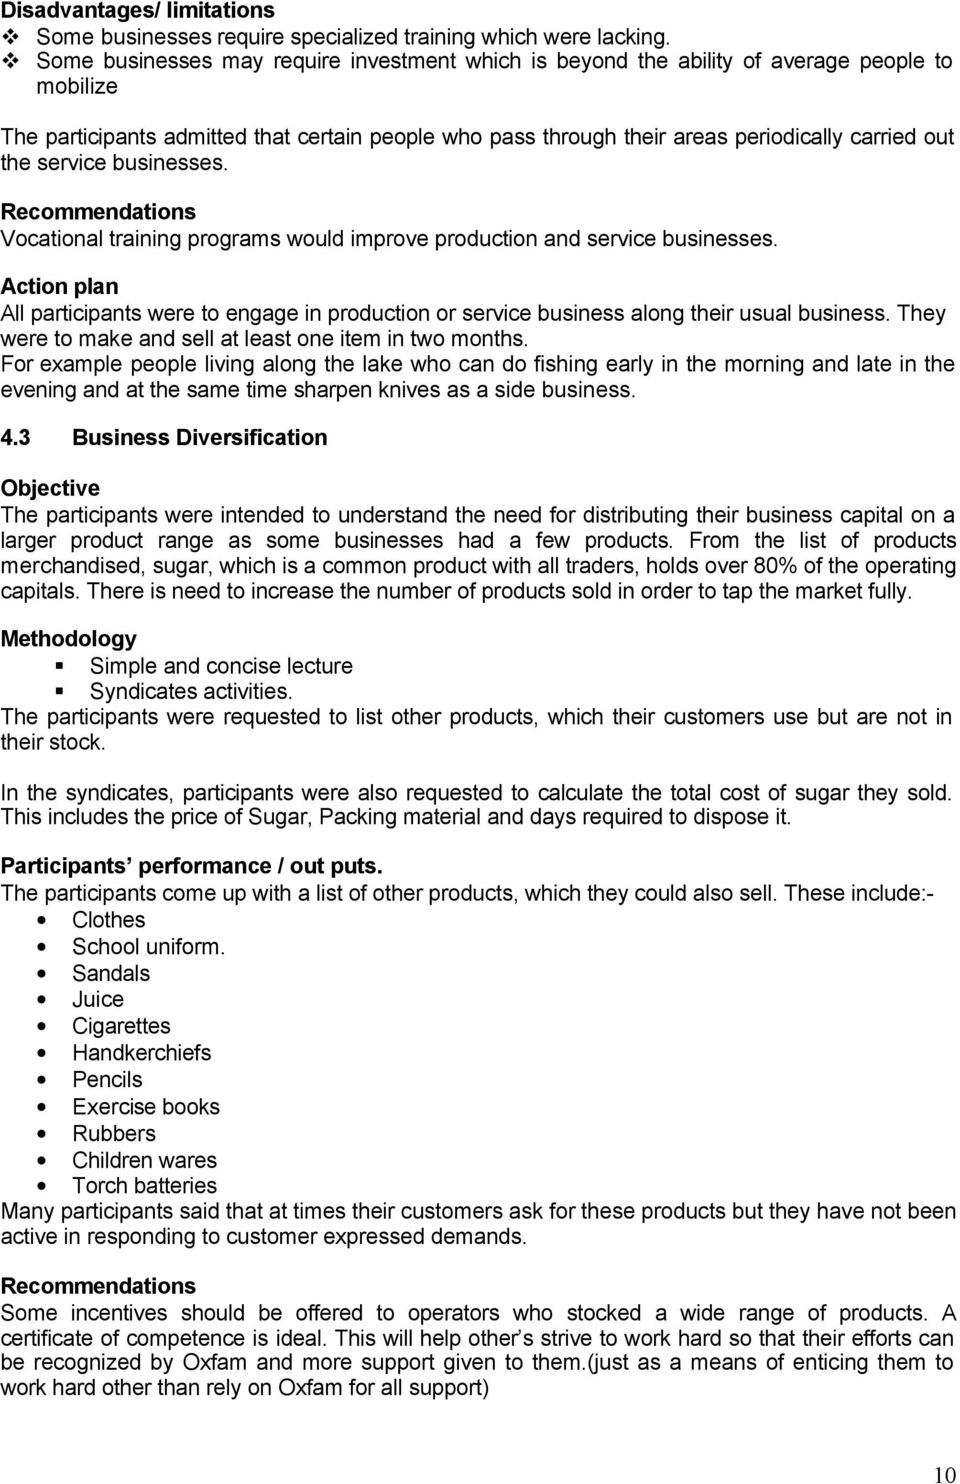 the service businesses. Recommendations Vocational training programs would improve production and service businesses.